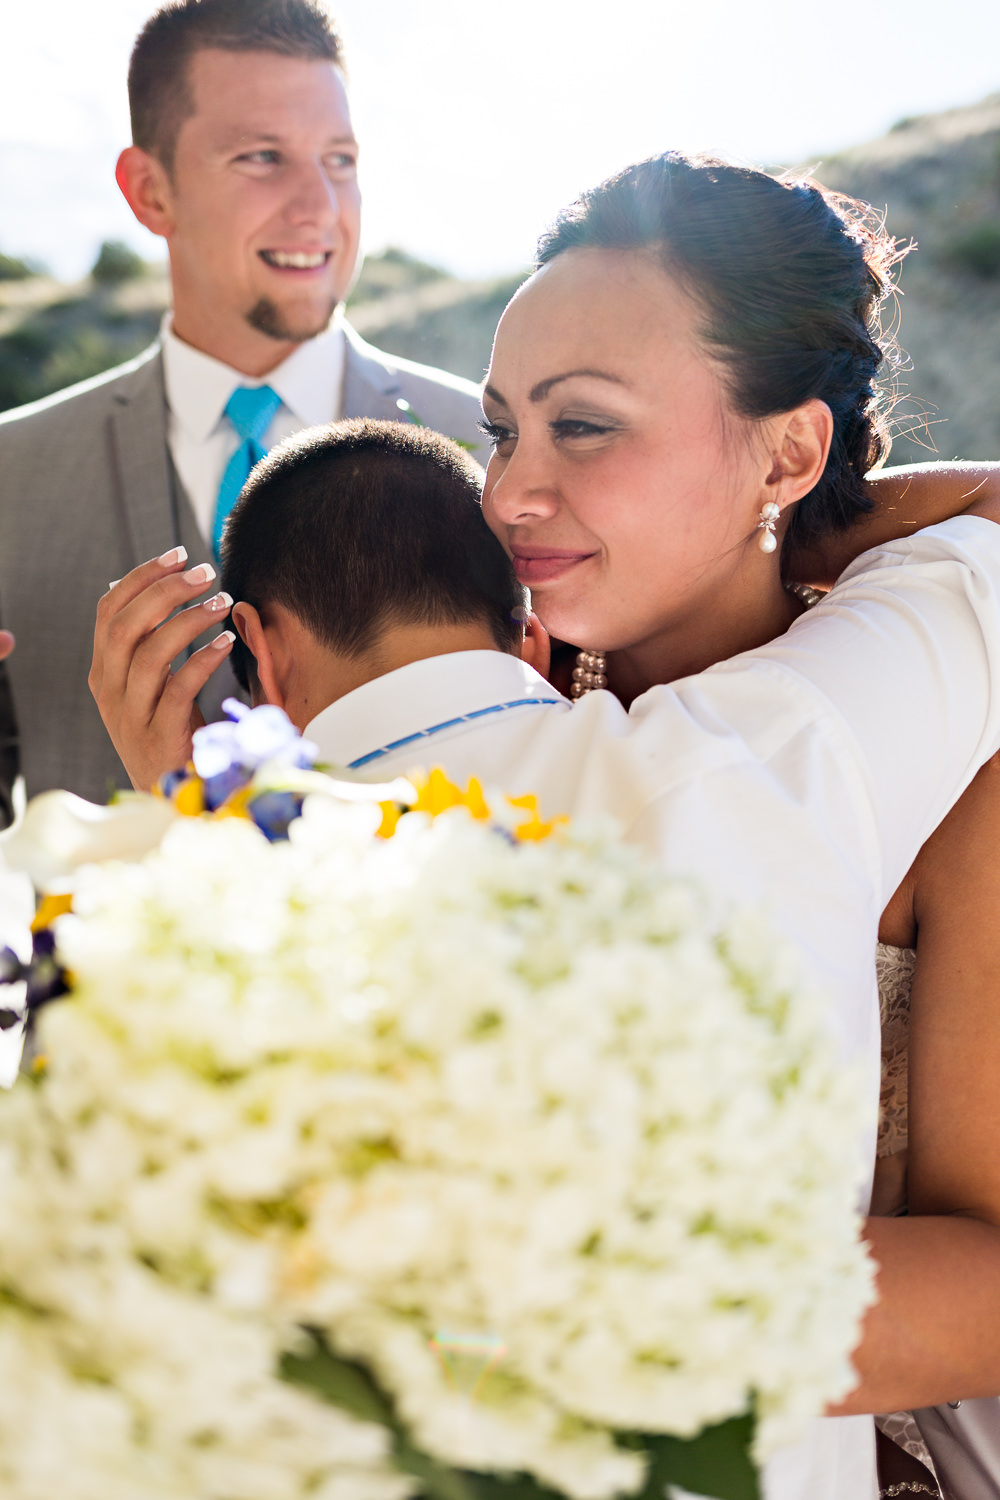 billings-montana-chanceys-wedding-reception-bride-hugs-nephew.jpg